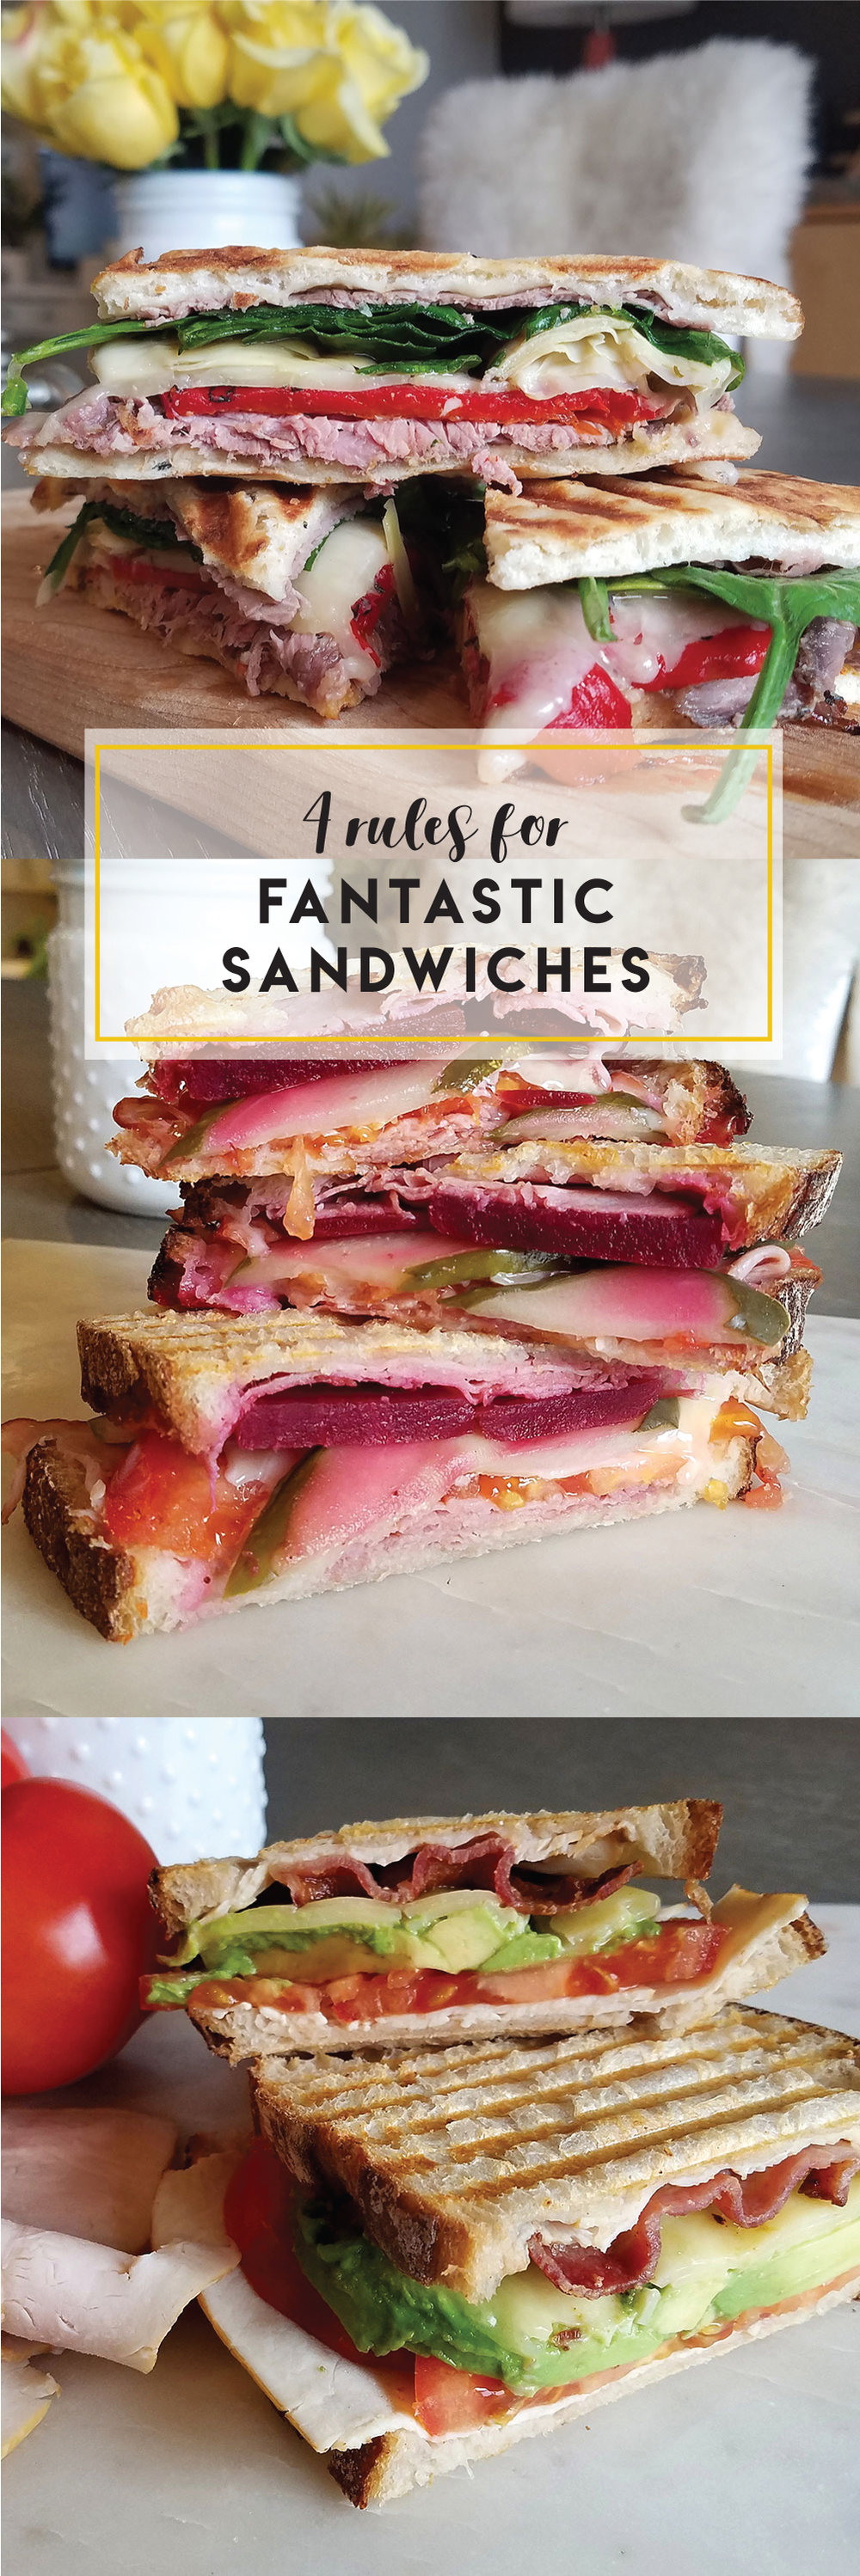 4-rules-for-fantastic-sandwiches.jpg